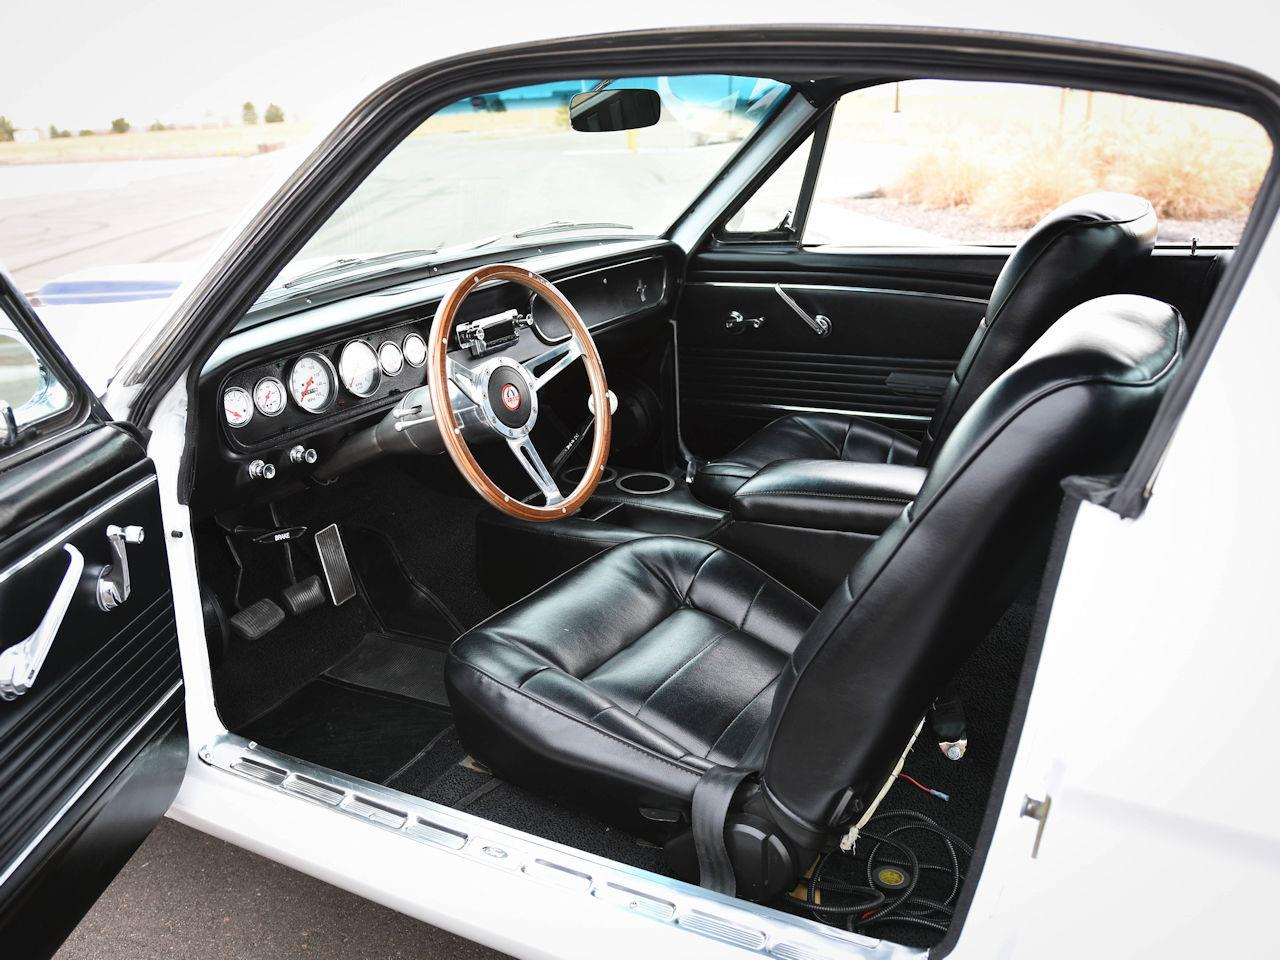 Large Picture of '65 Ford Mustang located in O'Fallon Illinois - $49,995.00 - MOAC